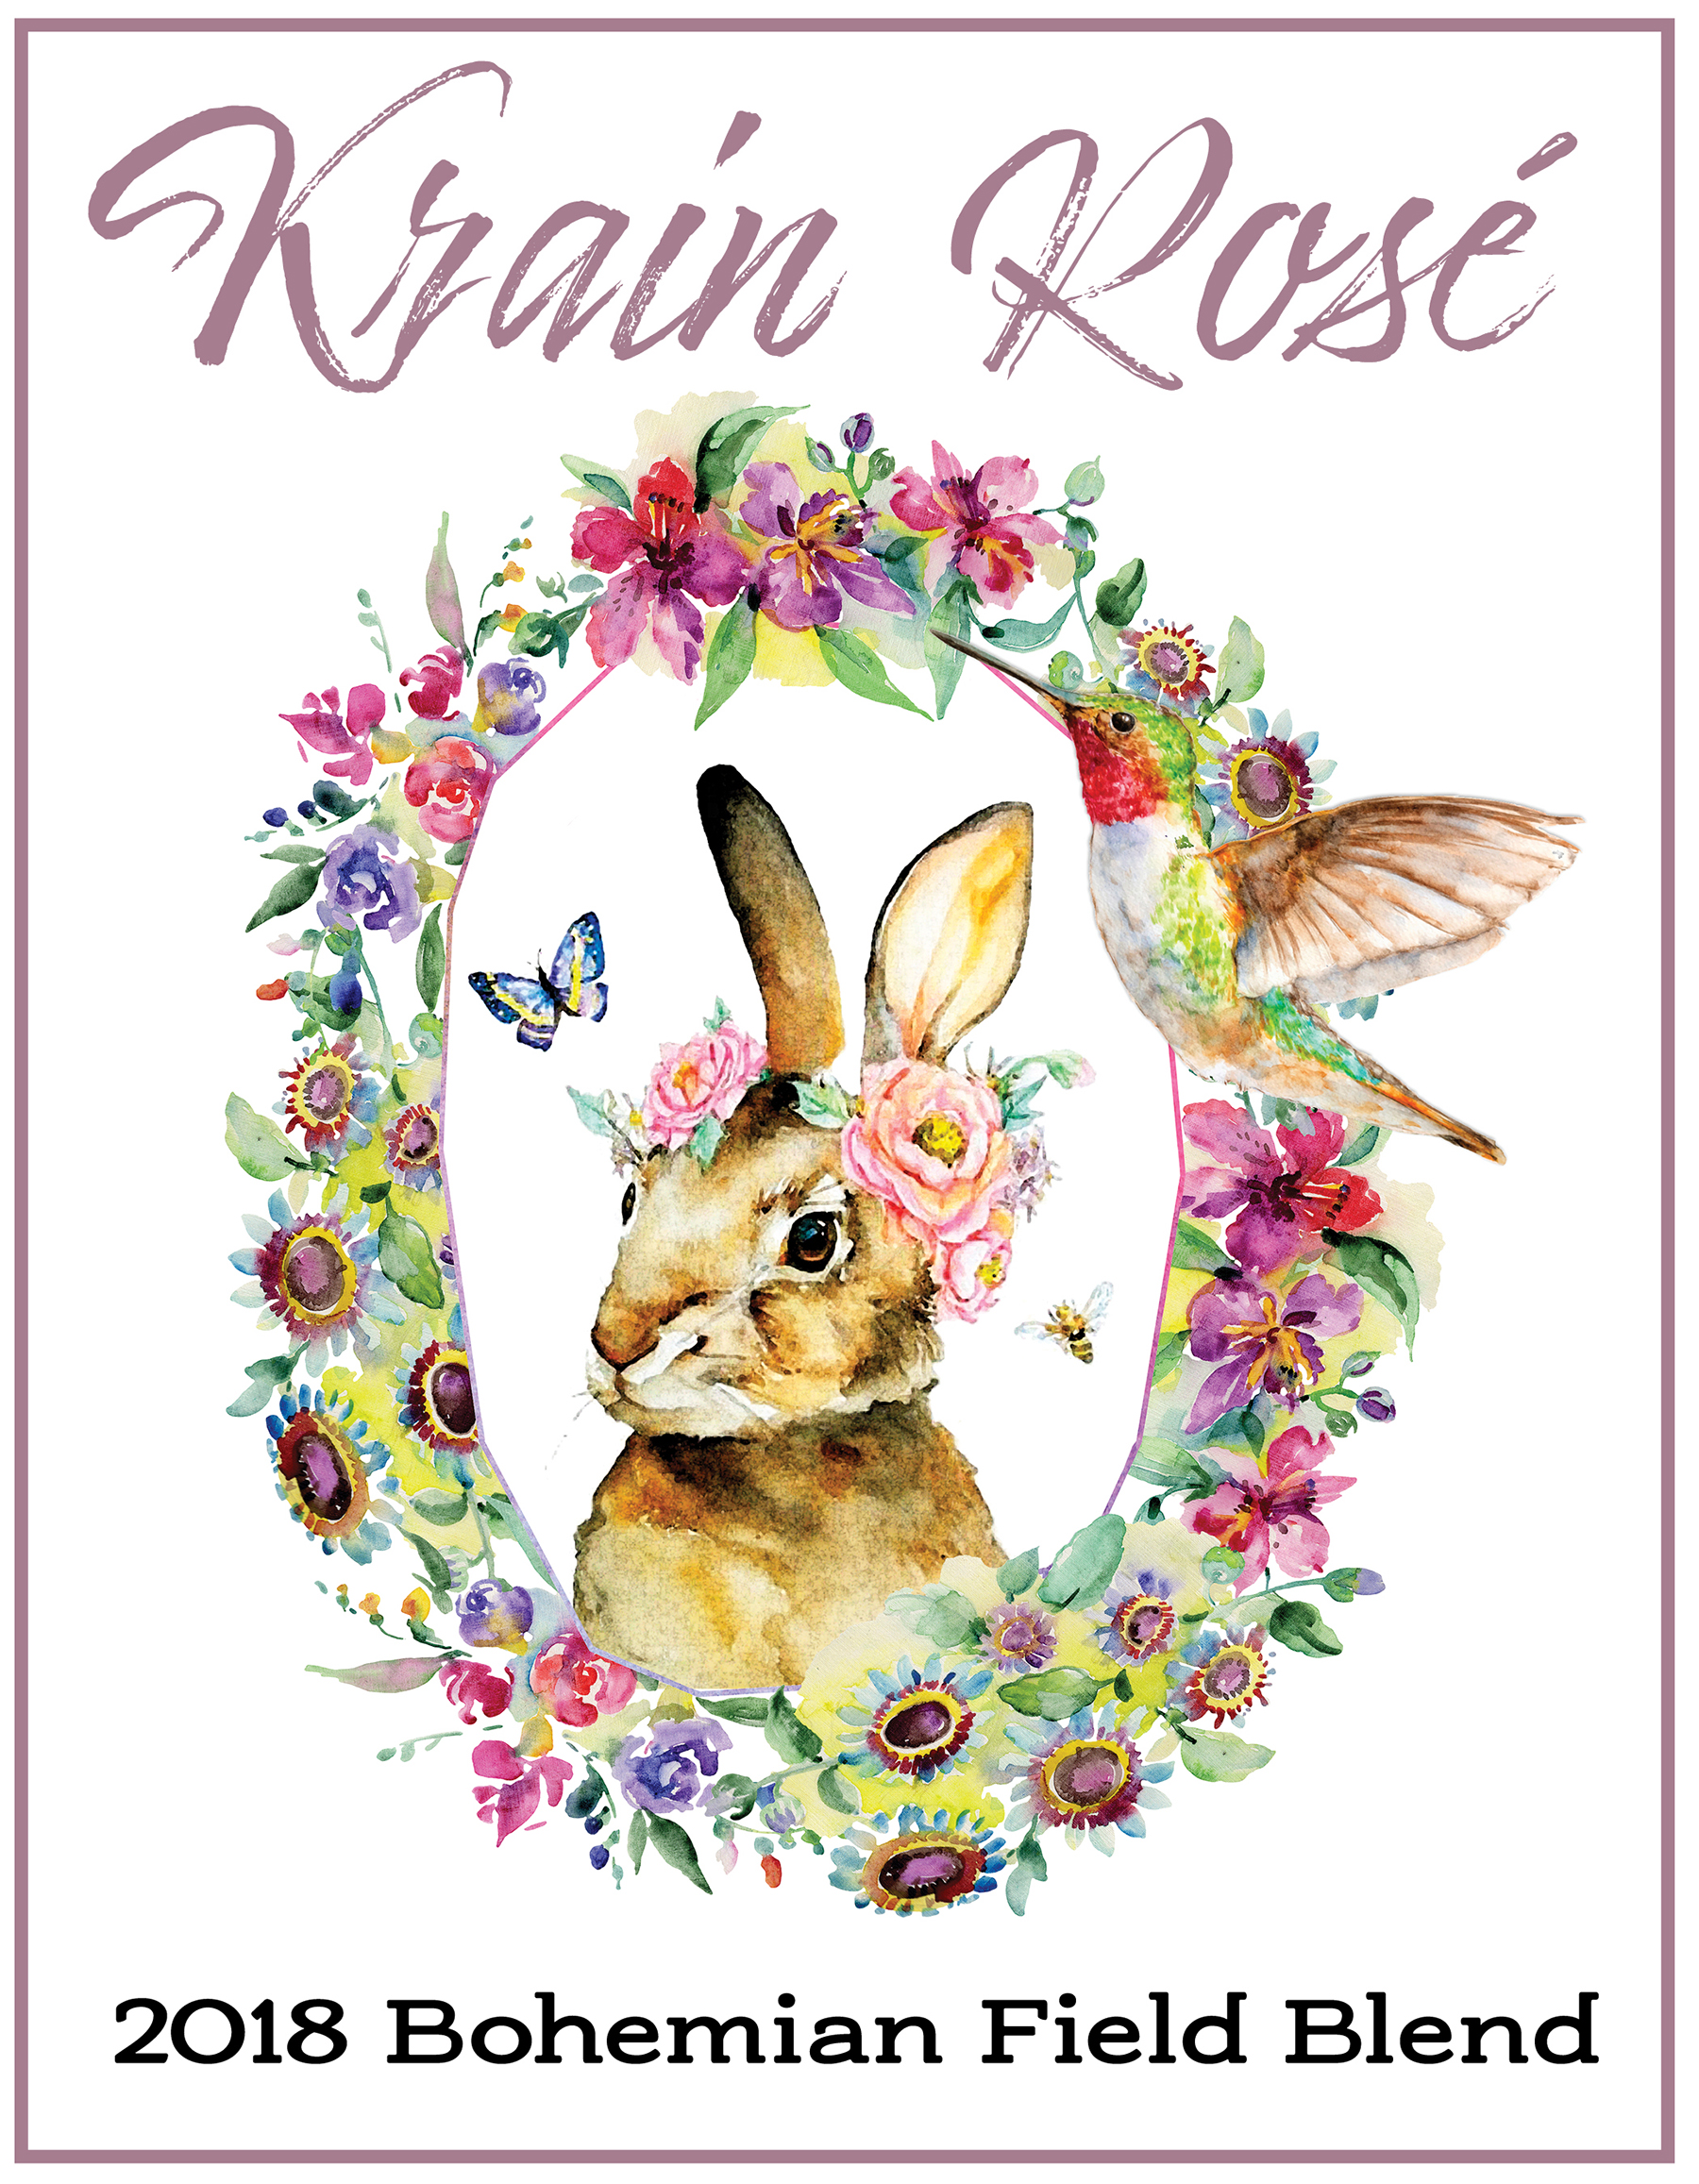 Krain Rose 2019 Label